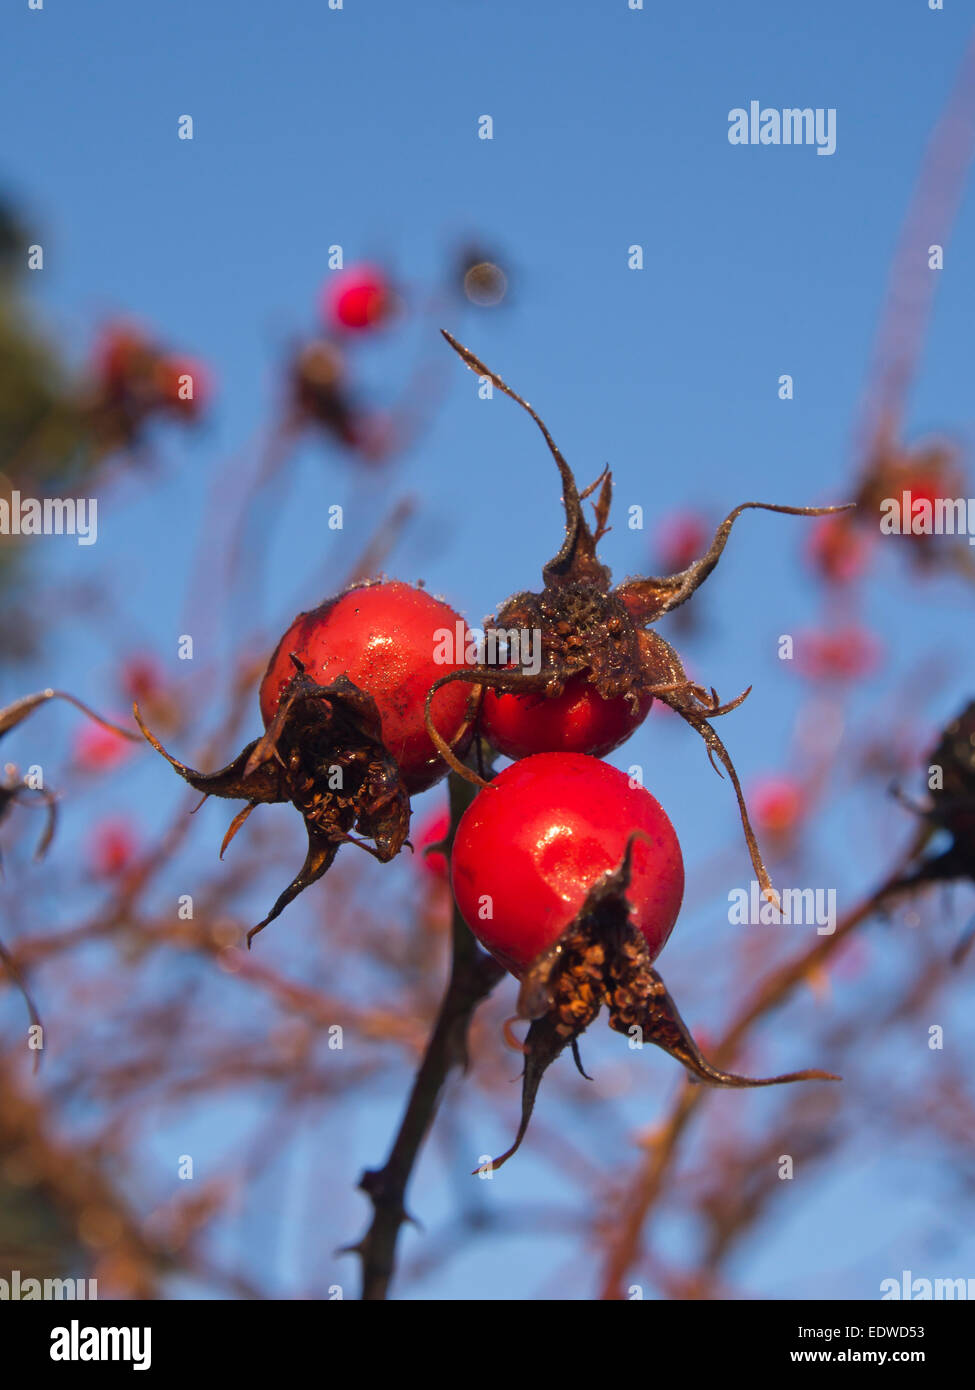 Rose hip fruit with thin ice coating against blue sky in winter - Stock Image